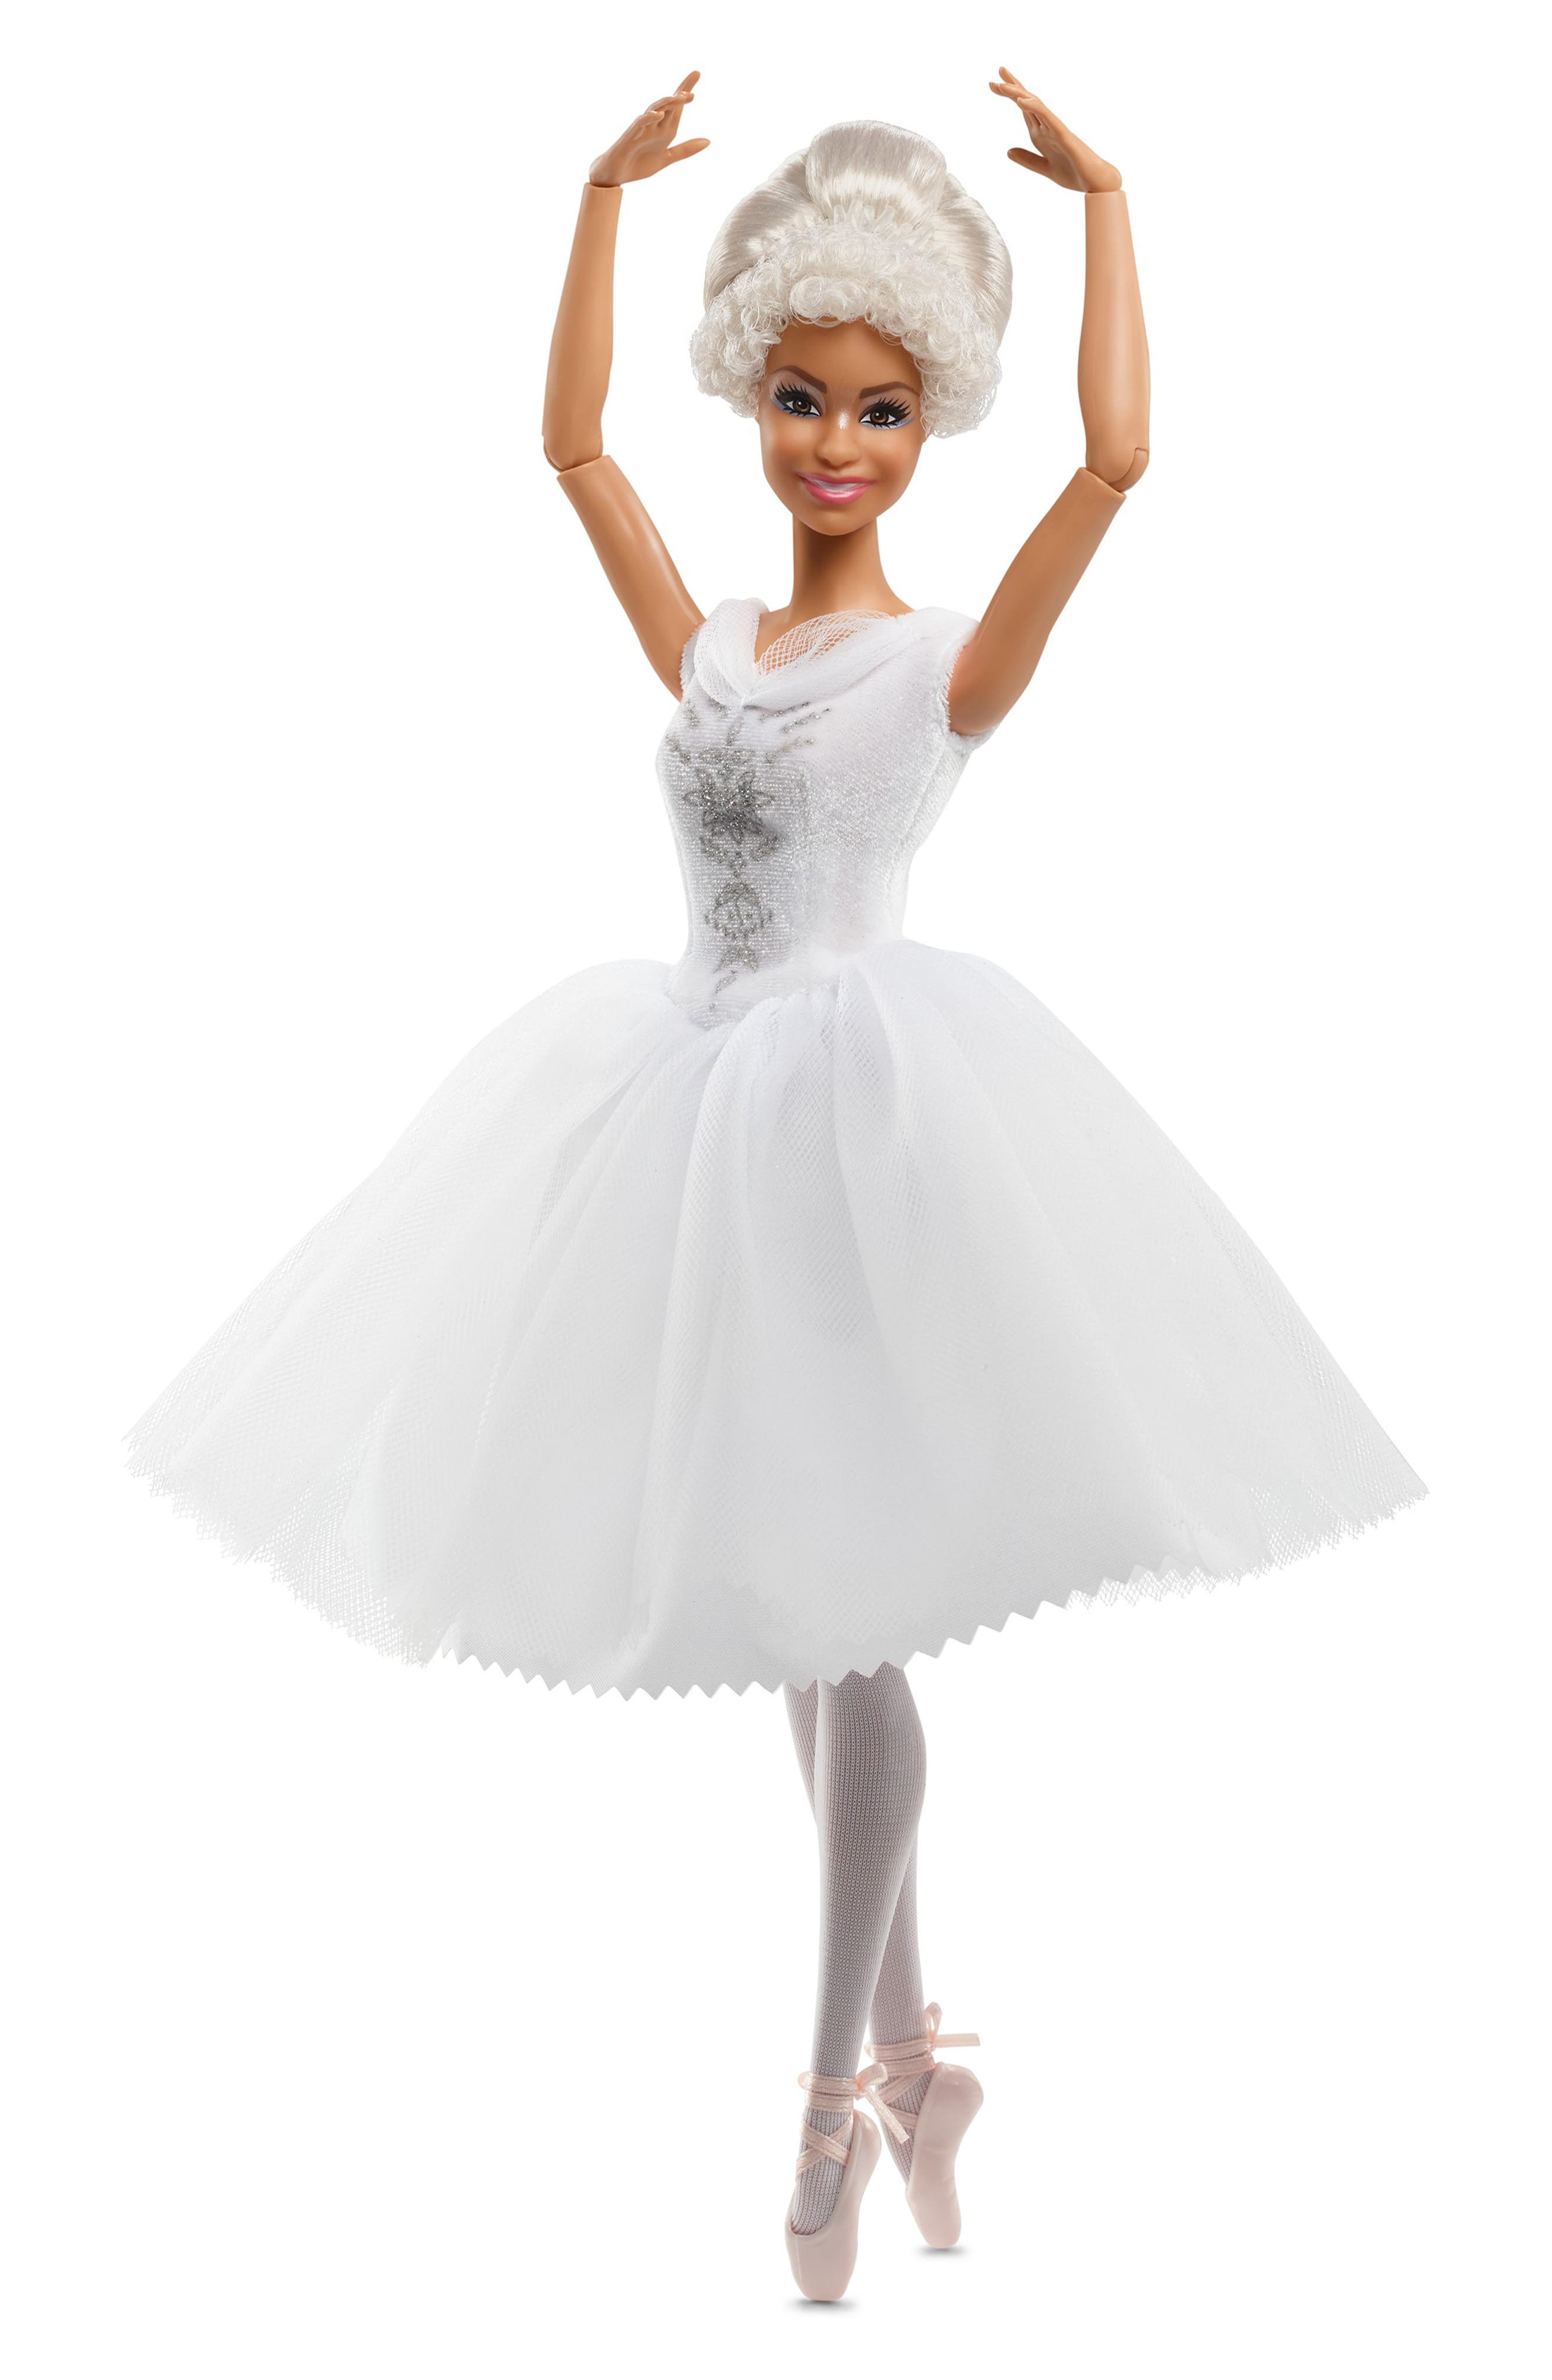 Girls Mattel Disney The Nutcracker And The Four Realms Ballerina Of The Realms Barbie Doll